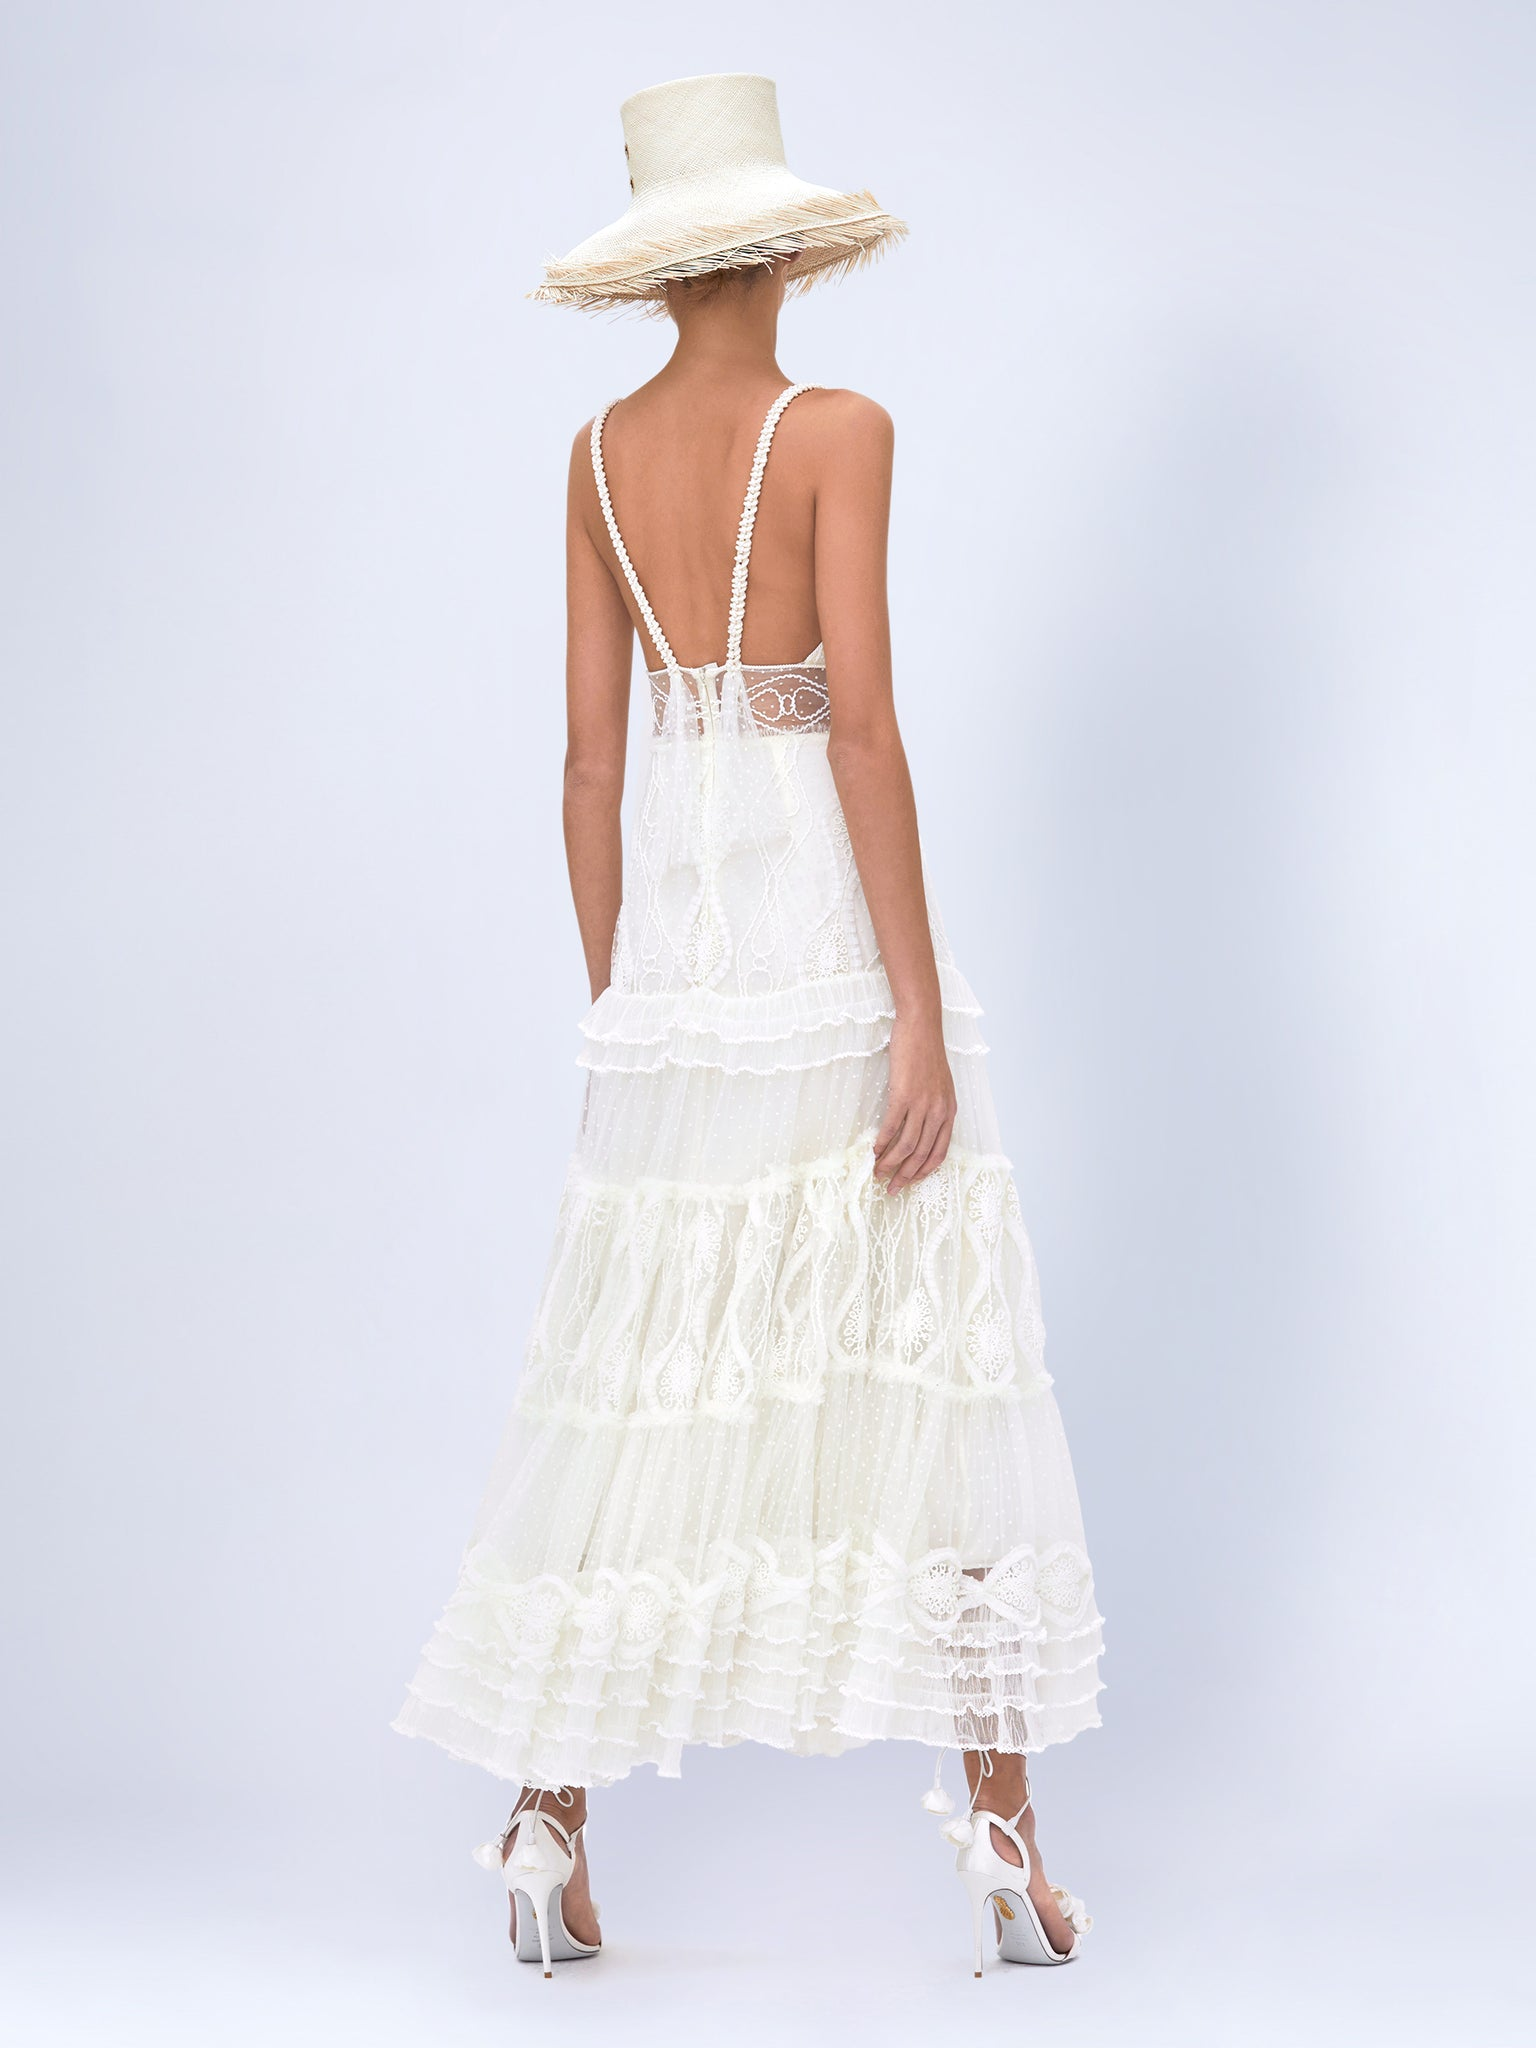 Alexis Arabella midi dress in off white featuring embroidered tulle tiers. Perfect dress for the bride-to-be. Dress for rehearsal dinners, bridal showers, and after party.  - Rear View